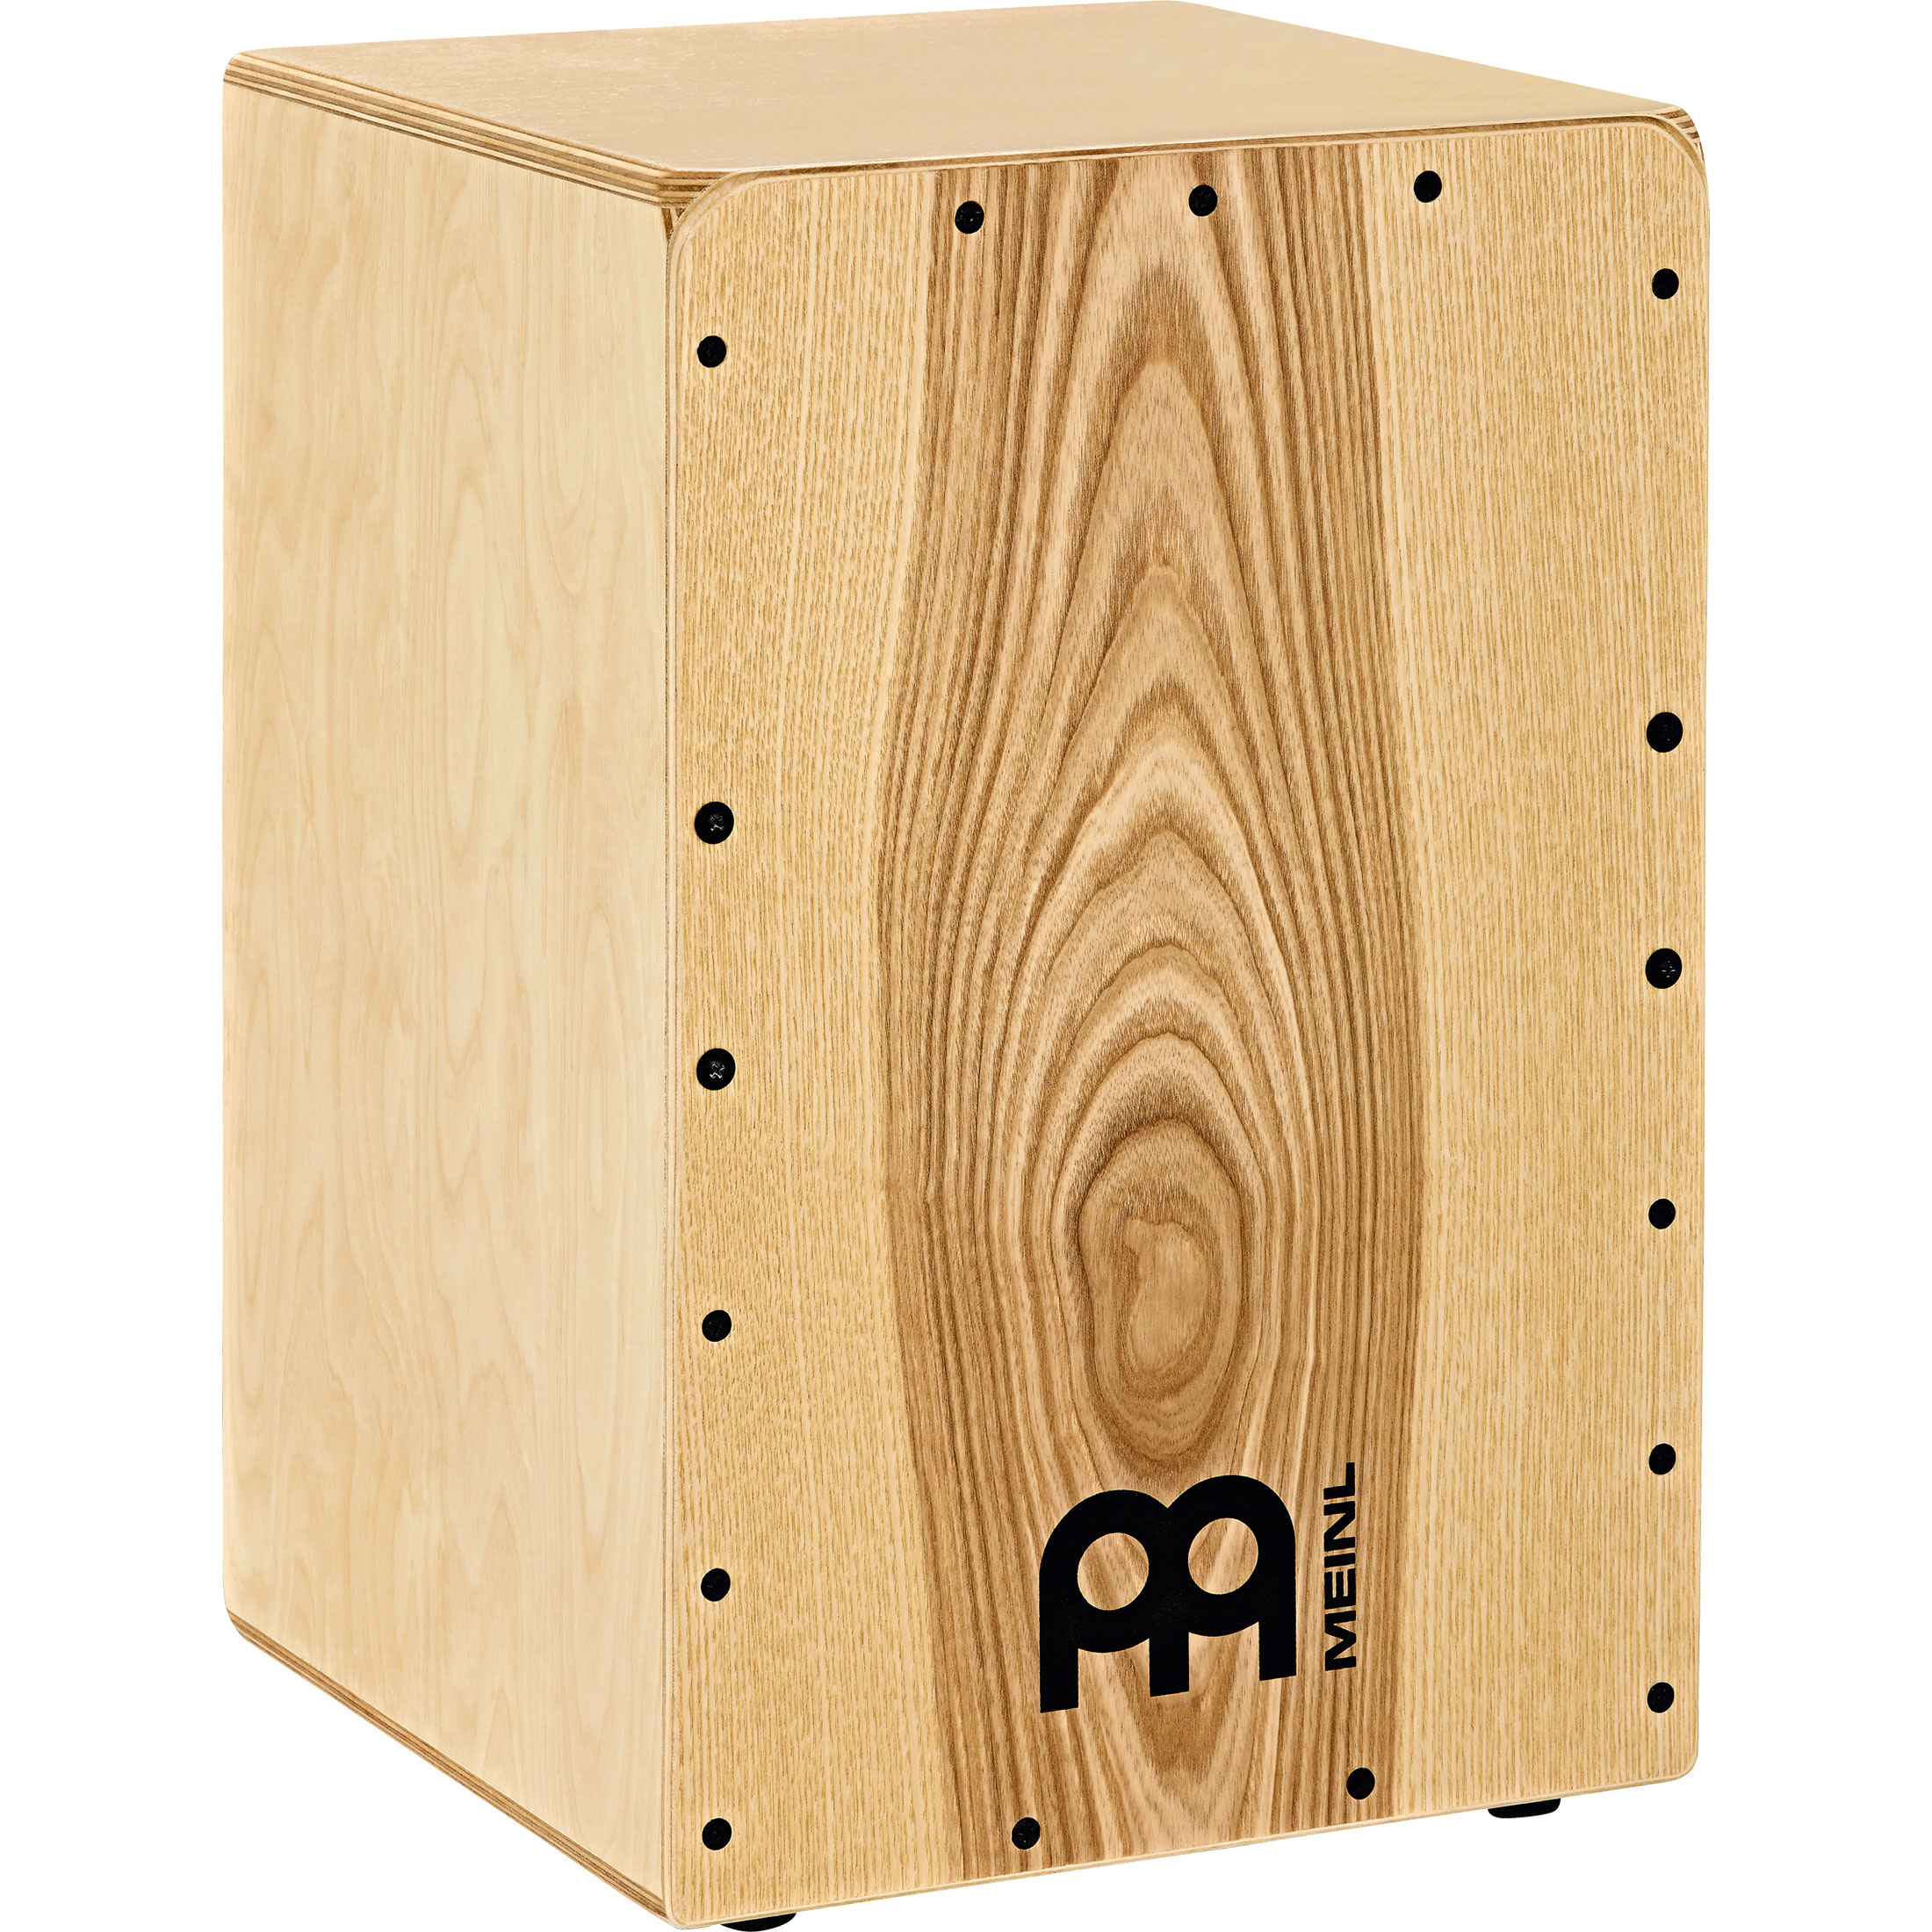 Meinl Snarecraft Cajon with Heart Ash Frontplate